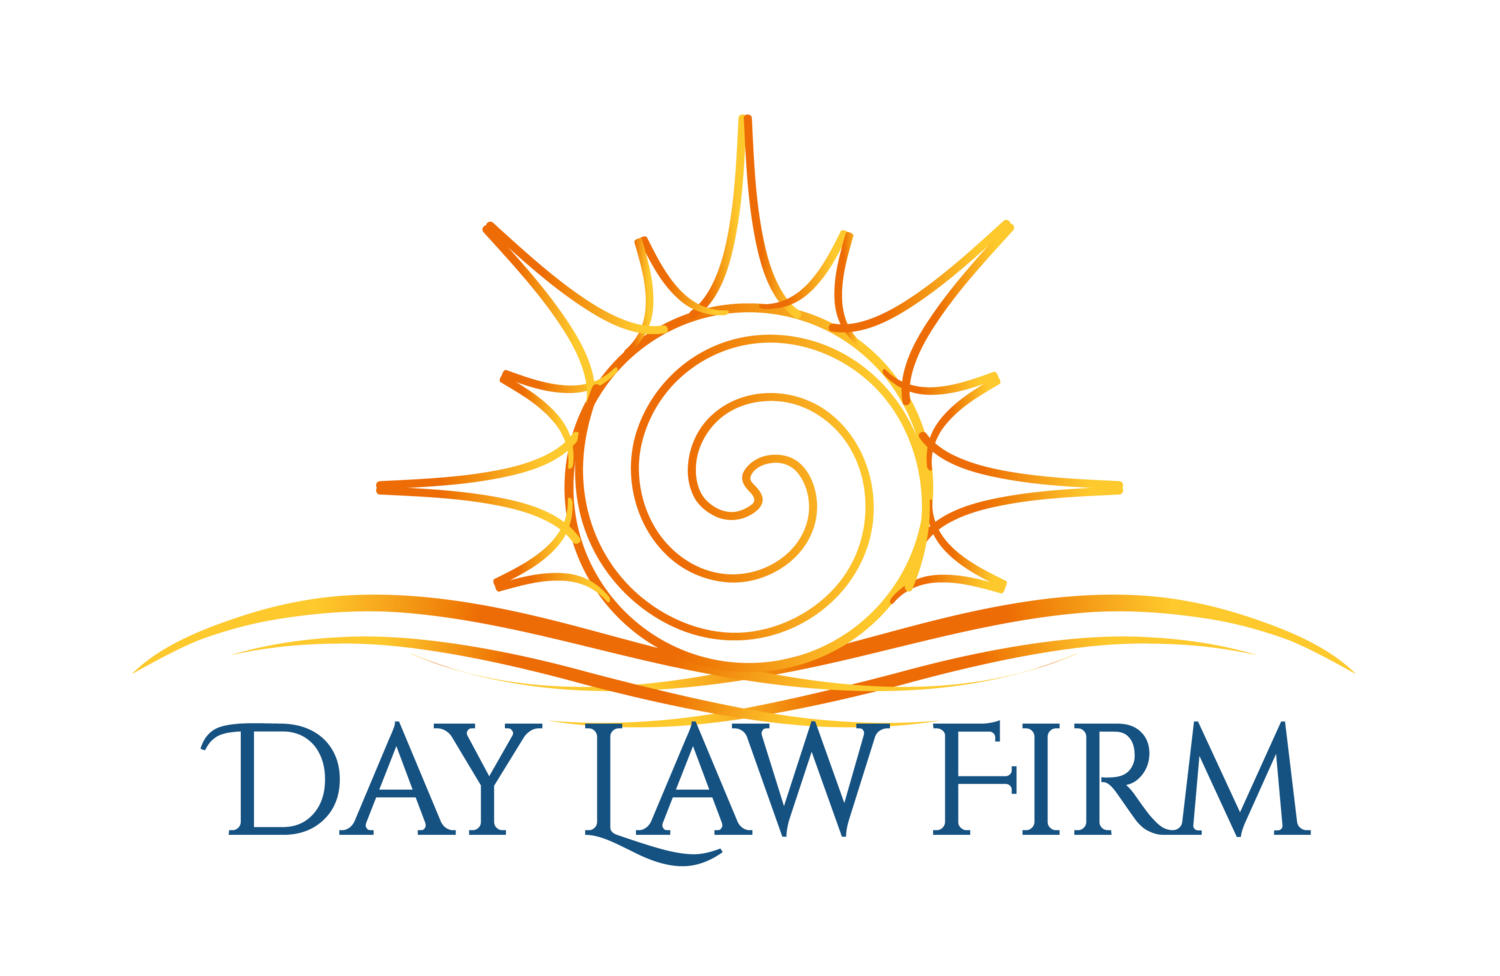 DAY LAW FIRM